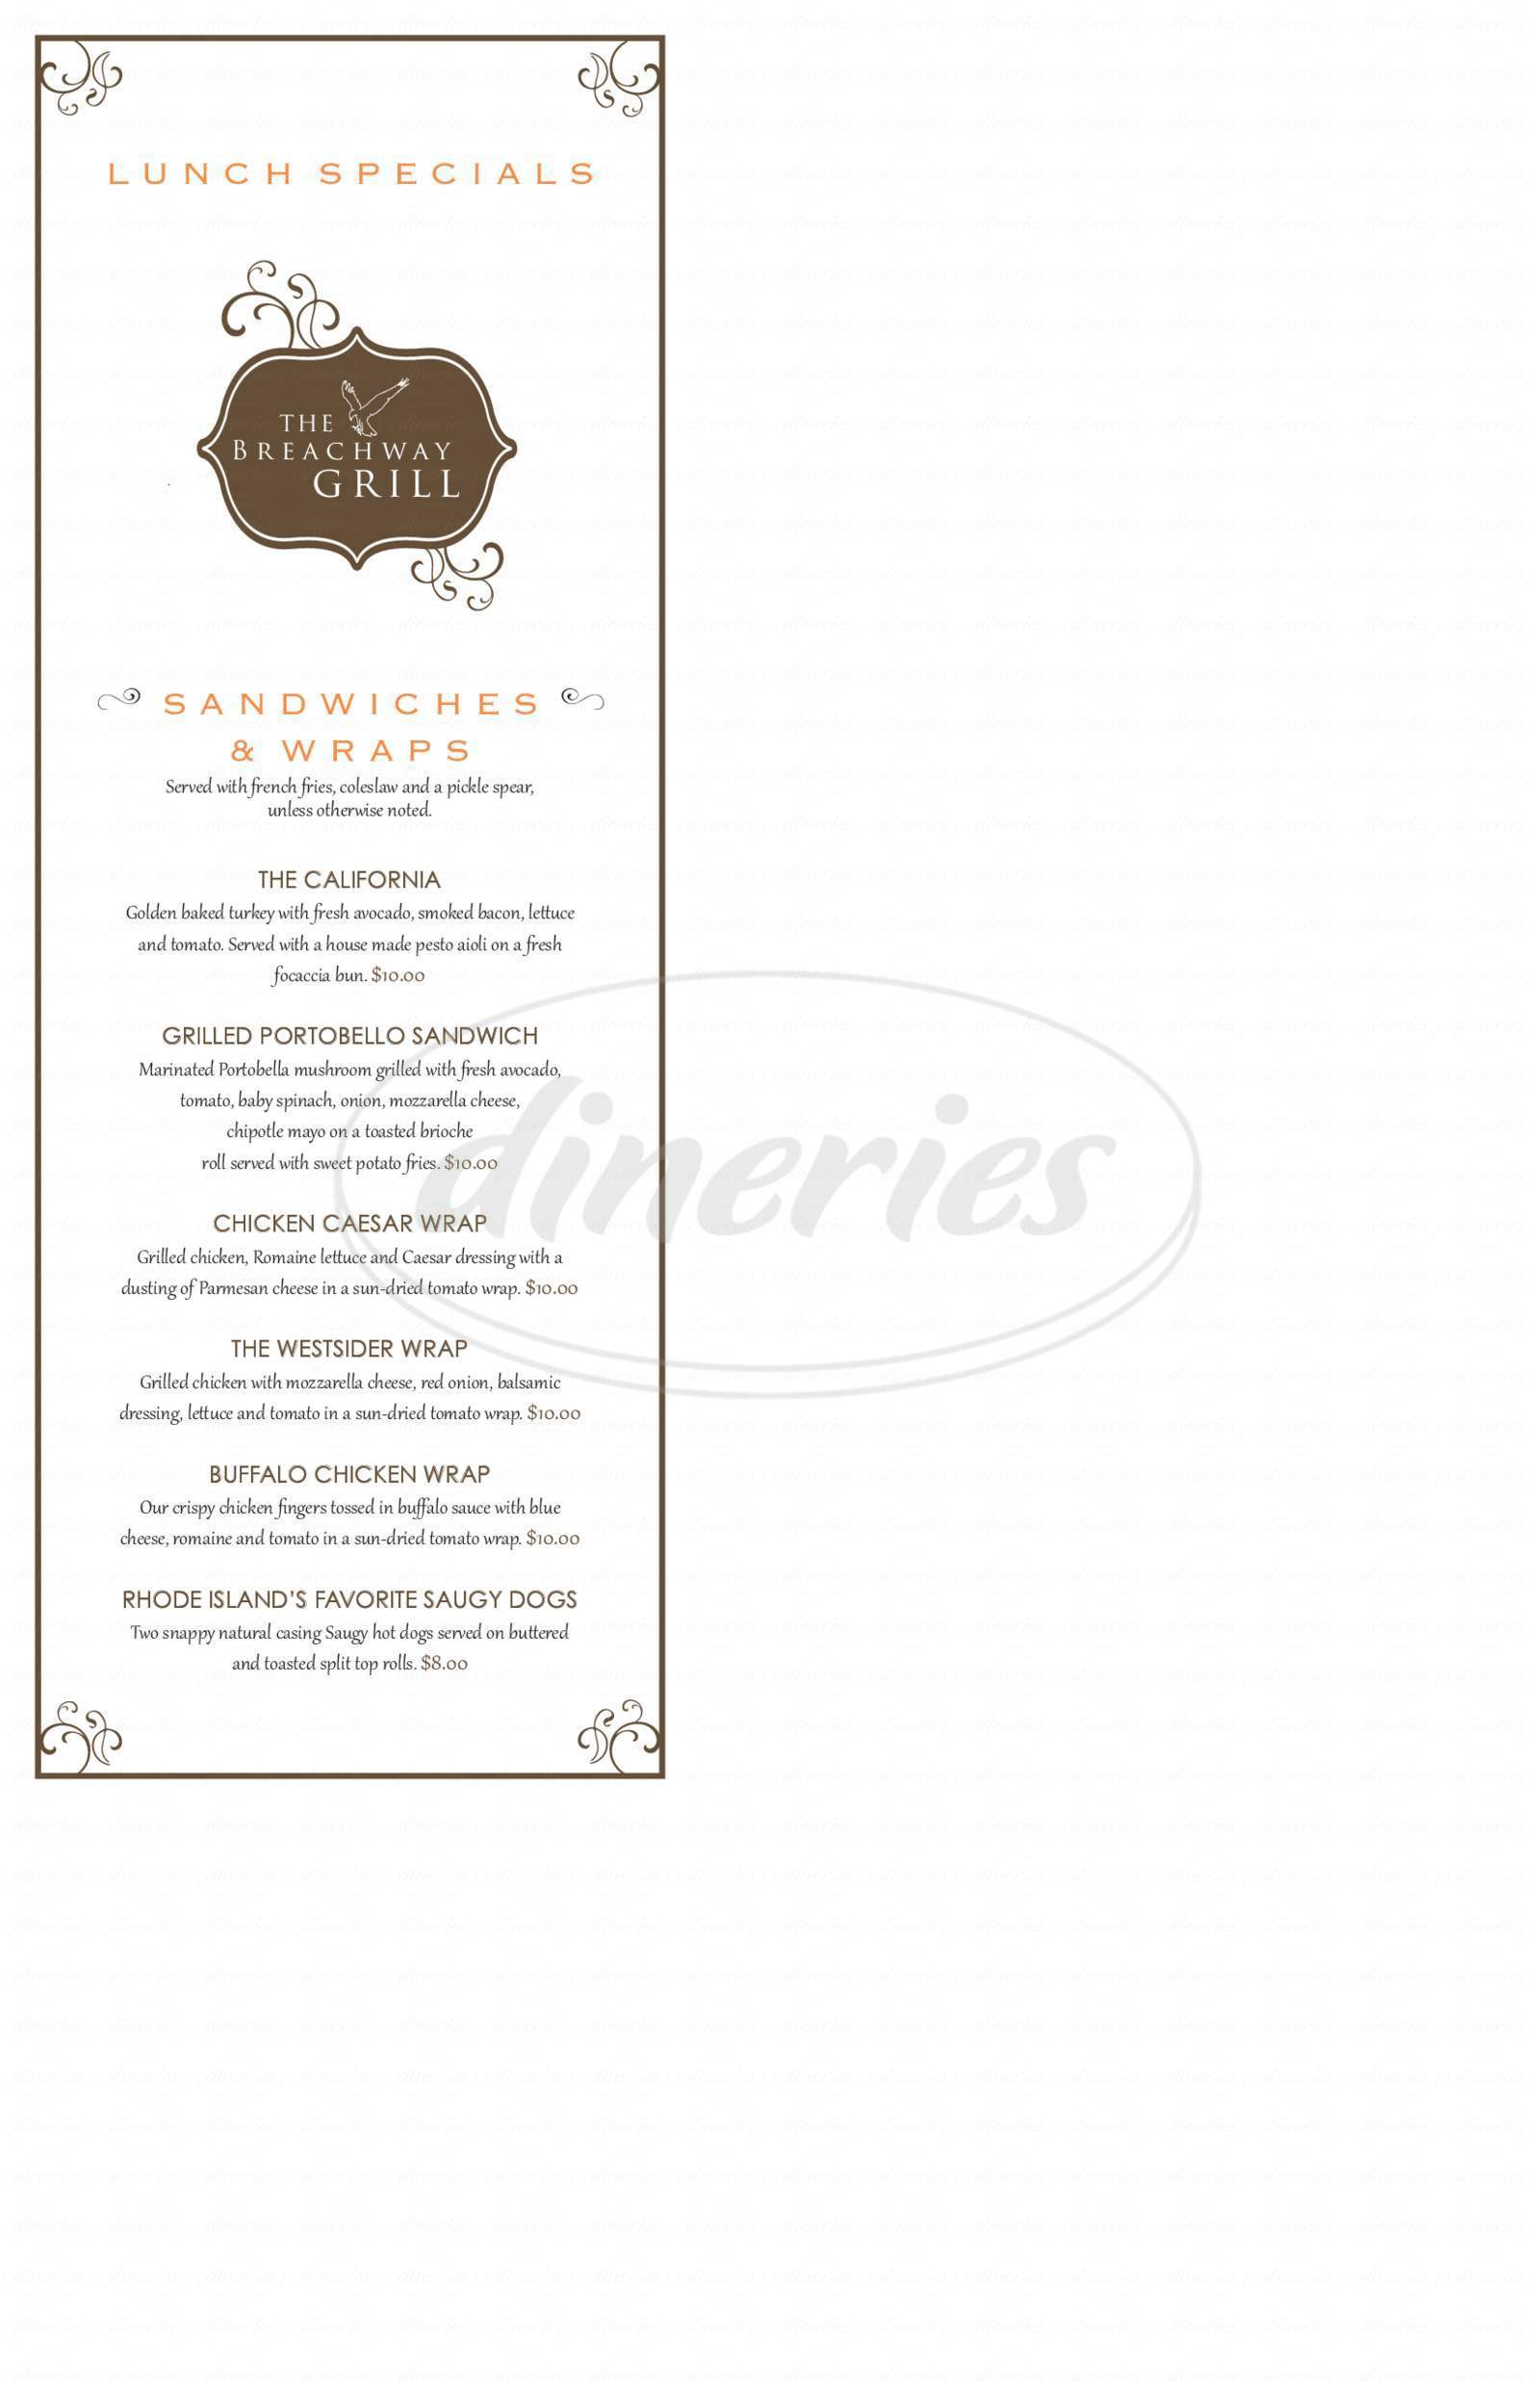 menu for The Breachway Grill